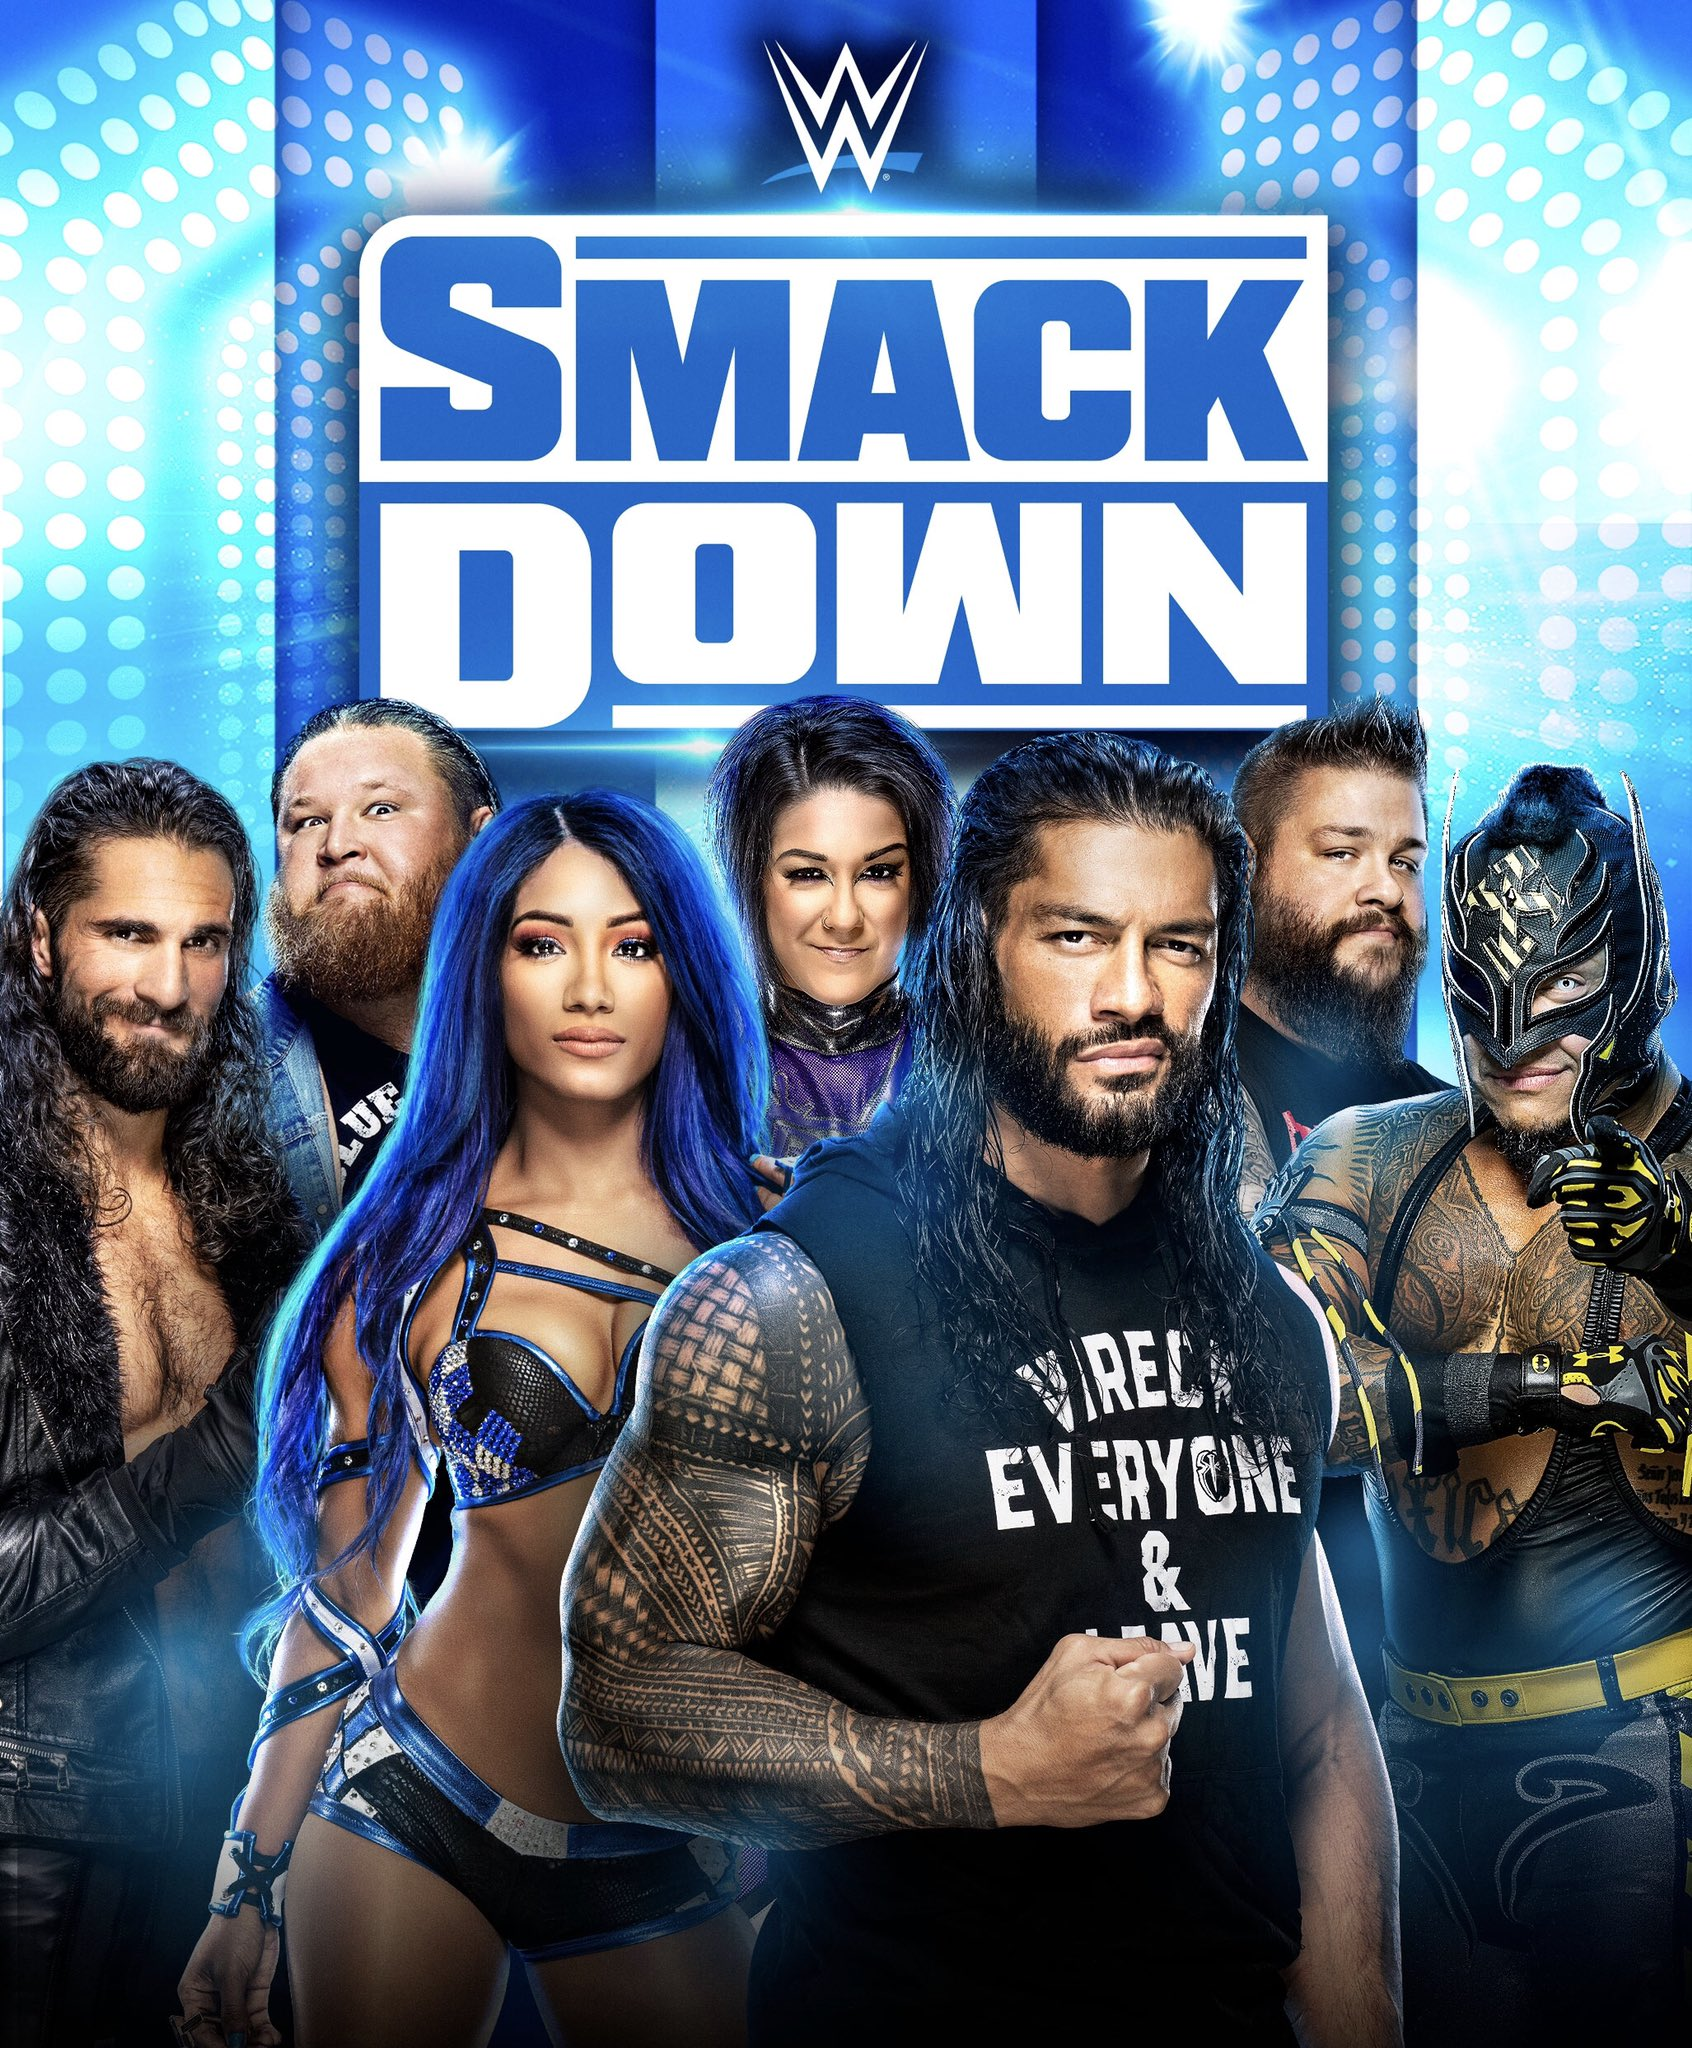 WWE Smackdown Top 5 Must See Moments and Full Results! Madison Square Garden